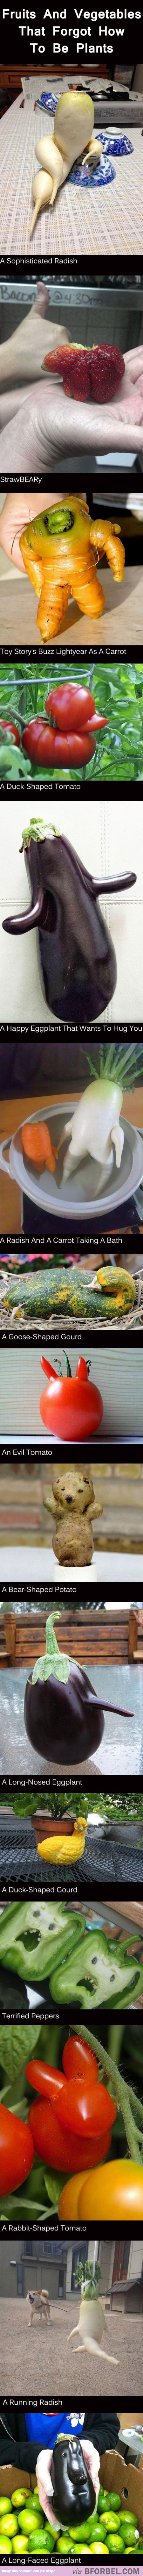 Aw this made my day XD: Forgot They Re, Giggle, They Re Plants, 15 Plants, Funny Vegetables, Funny Stuff, Funny Quotes, Fruits And Vegetables